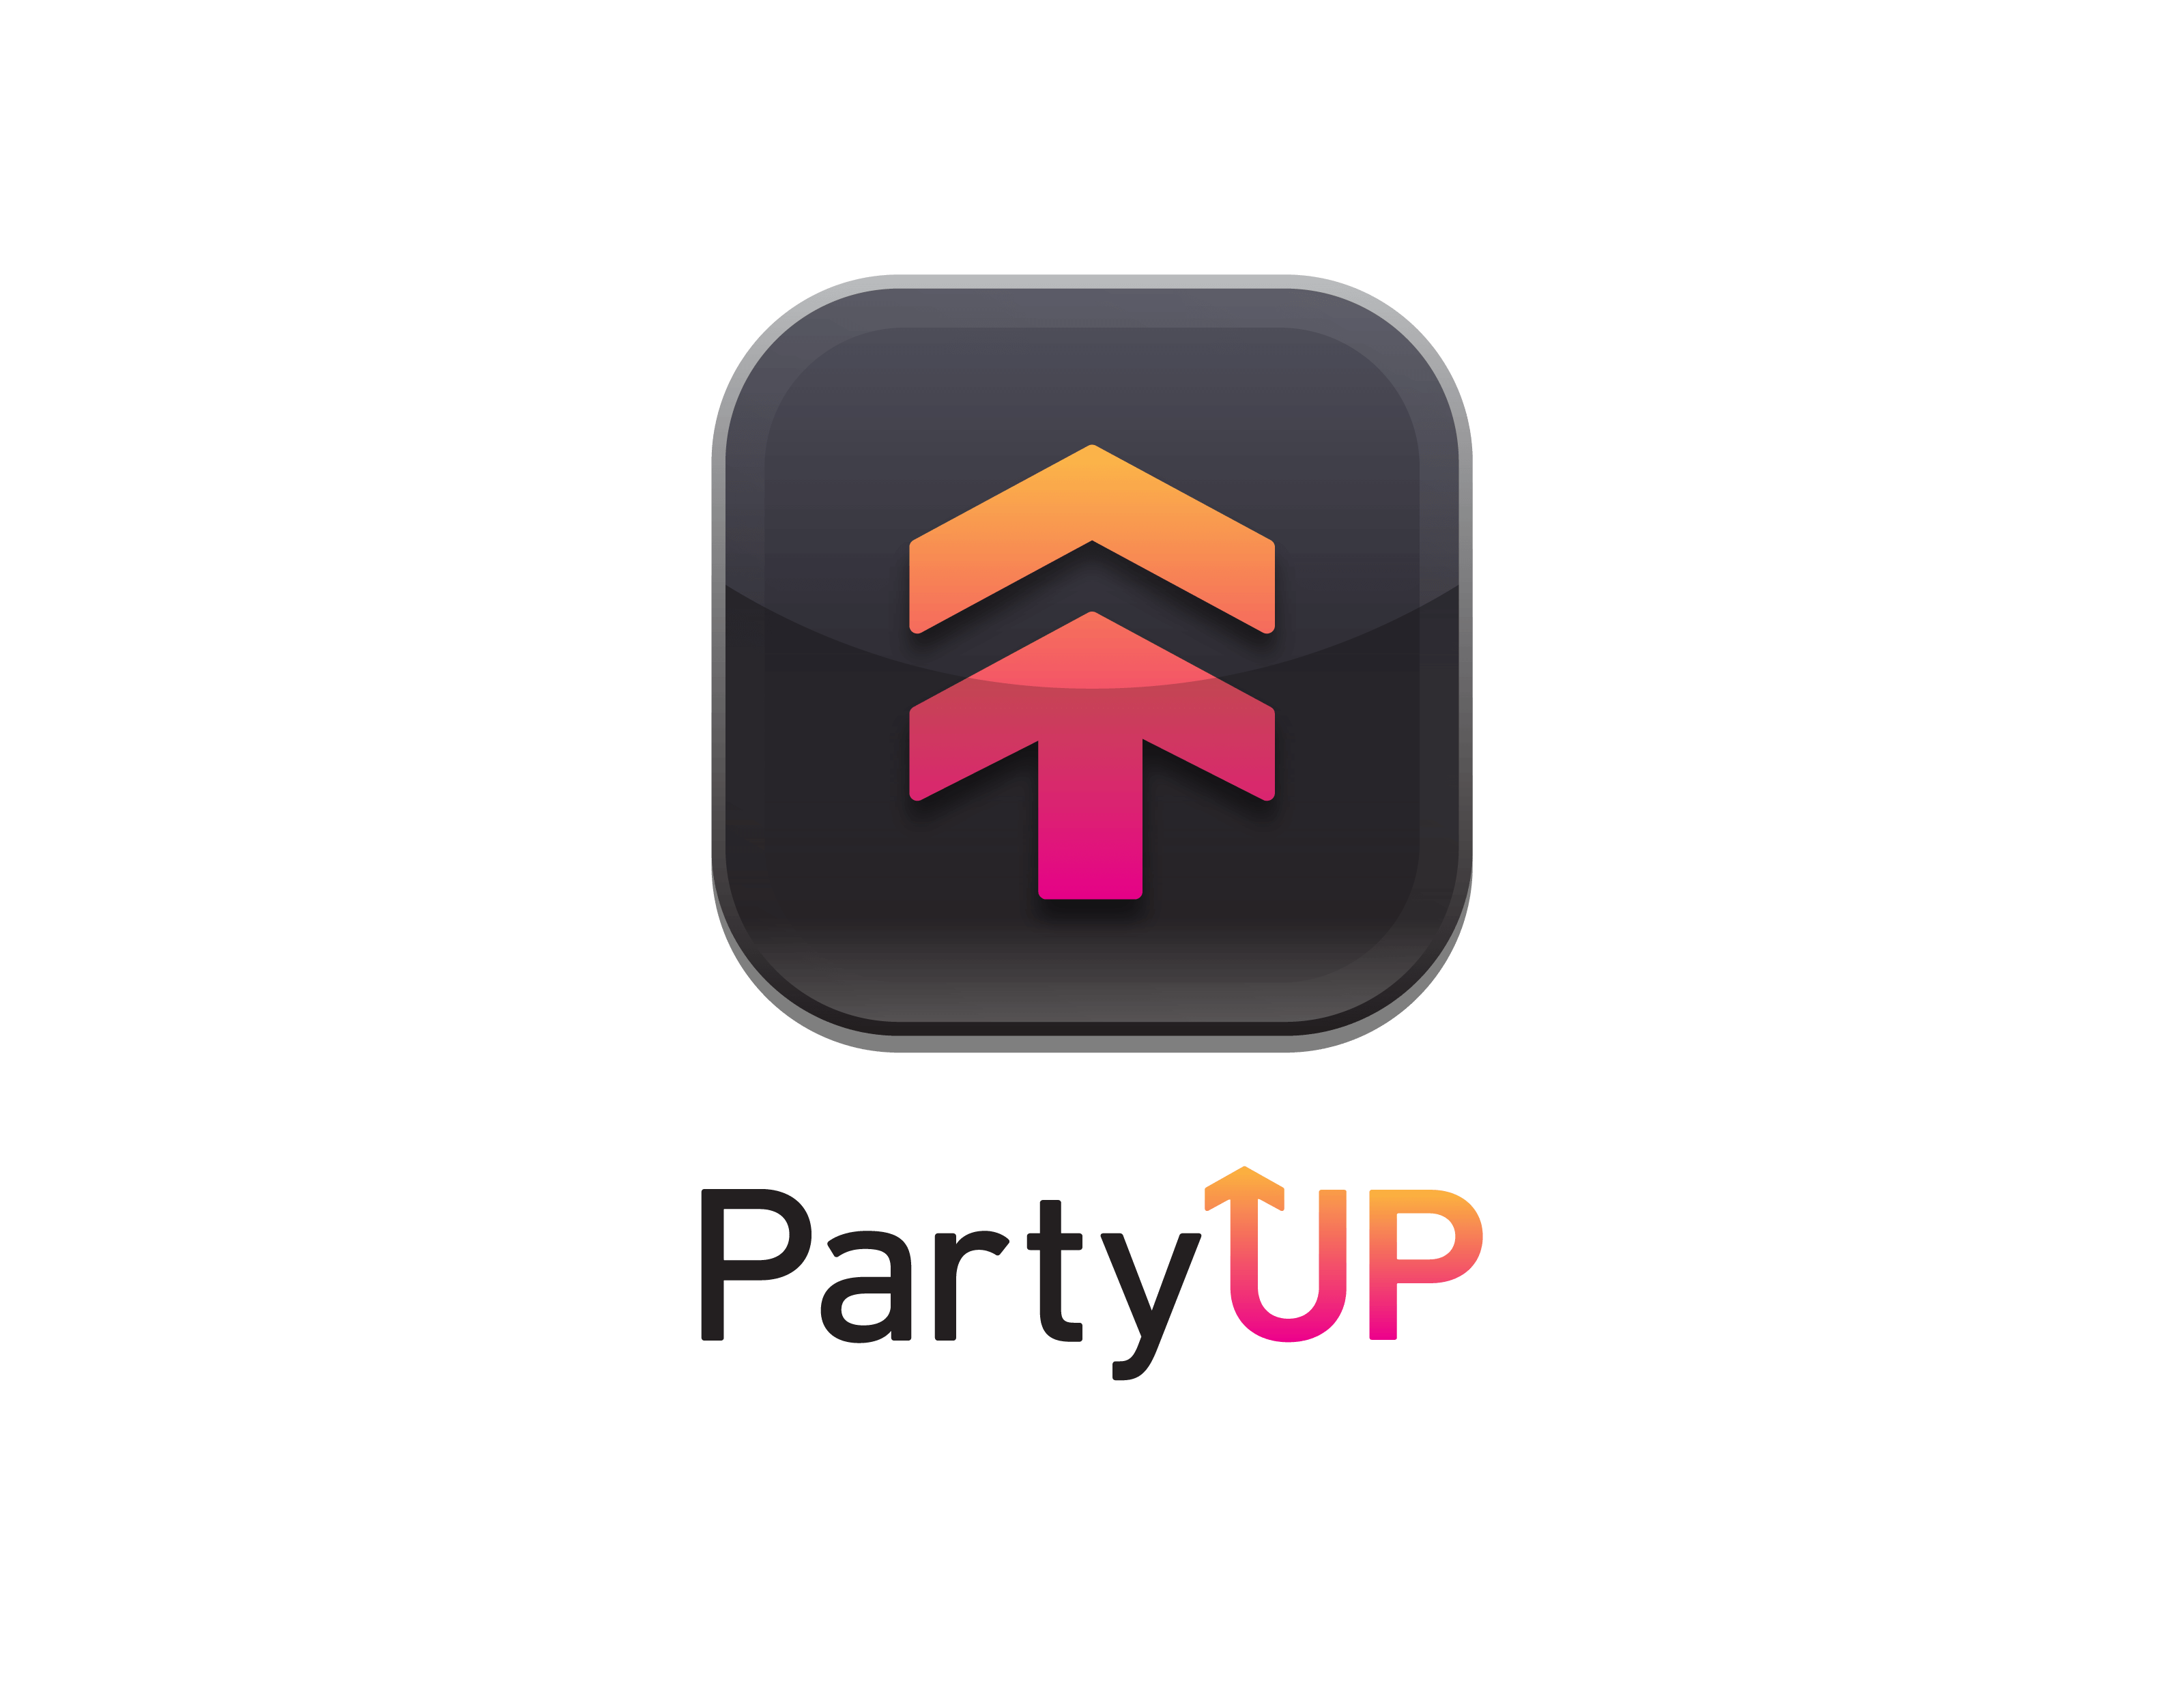 PartUP IOS App Logo designed by Pivot Halifax